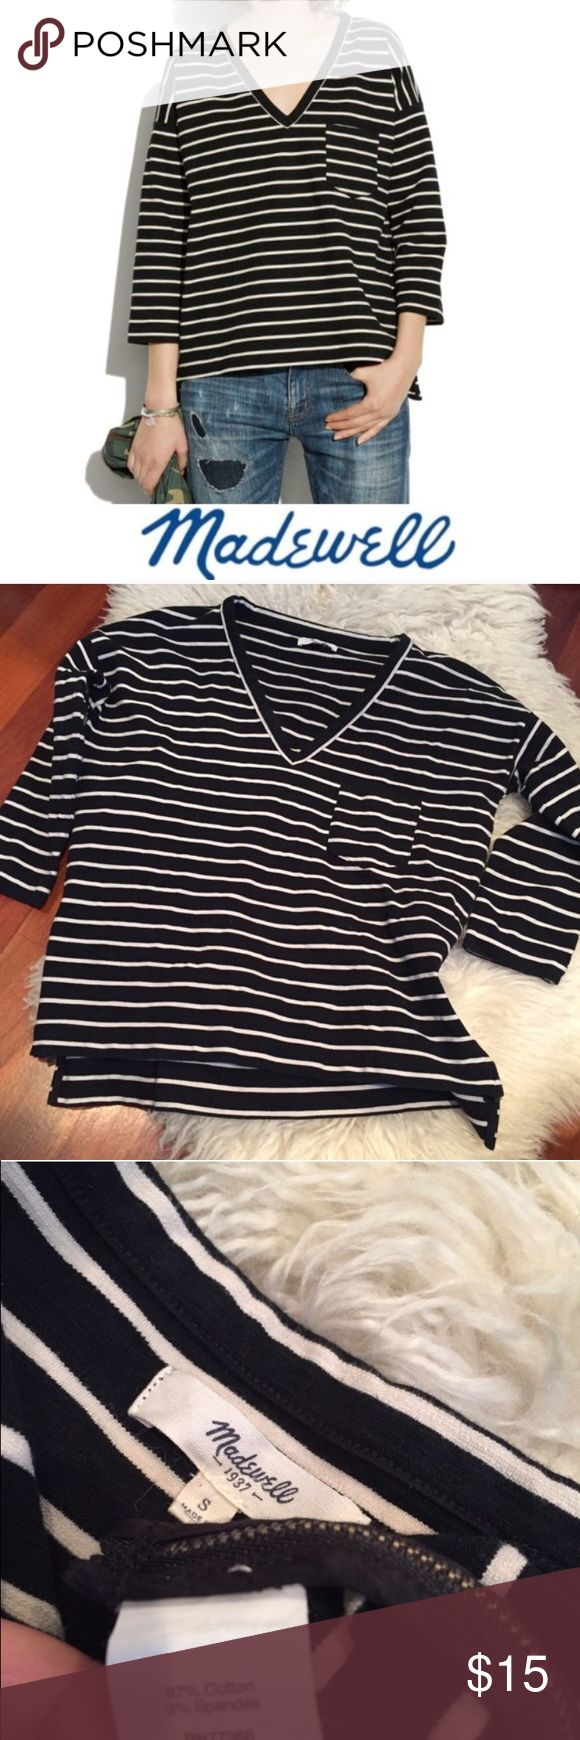 Madewell Side Zip Slub Ponte V-Neck Top Madewell Side Zip Slub Ponte Striped V-Neck Top. 20 inch bust. 22 inches long on the front, 24 inches long in the back. Zippers on the front side. Cream and black. Gently worn. Great condition. Feel free to make an offer or bundle & save! Madewell Tops